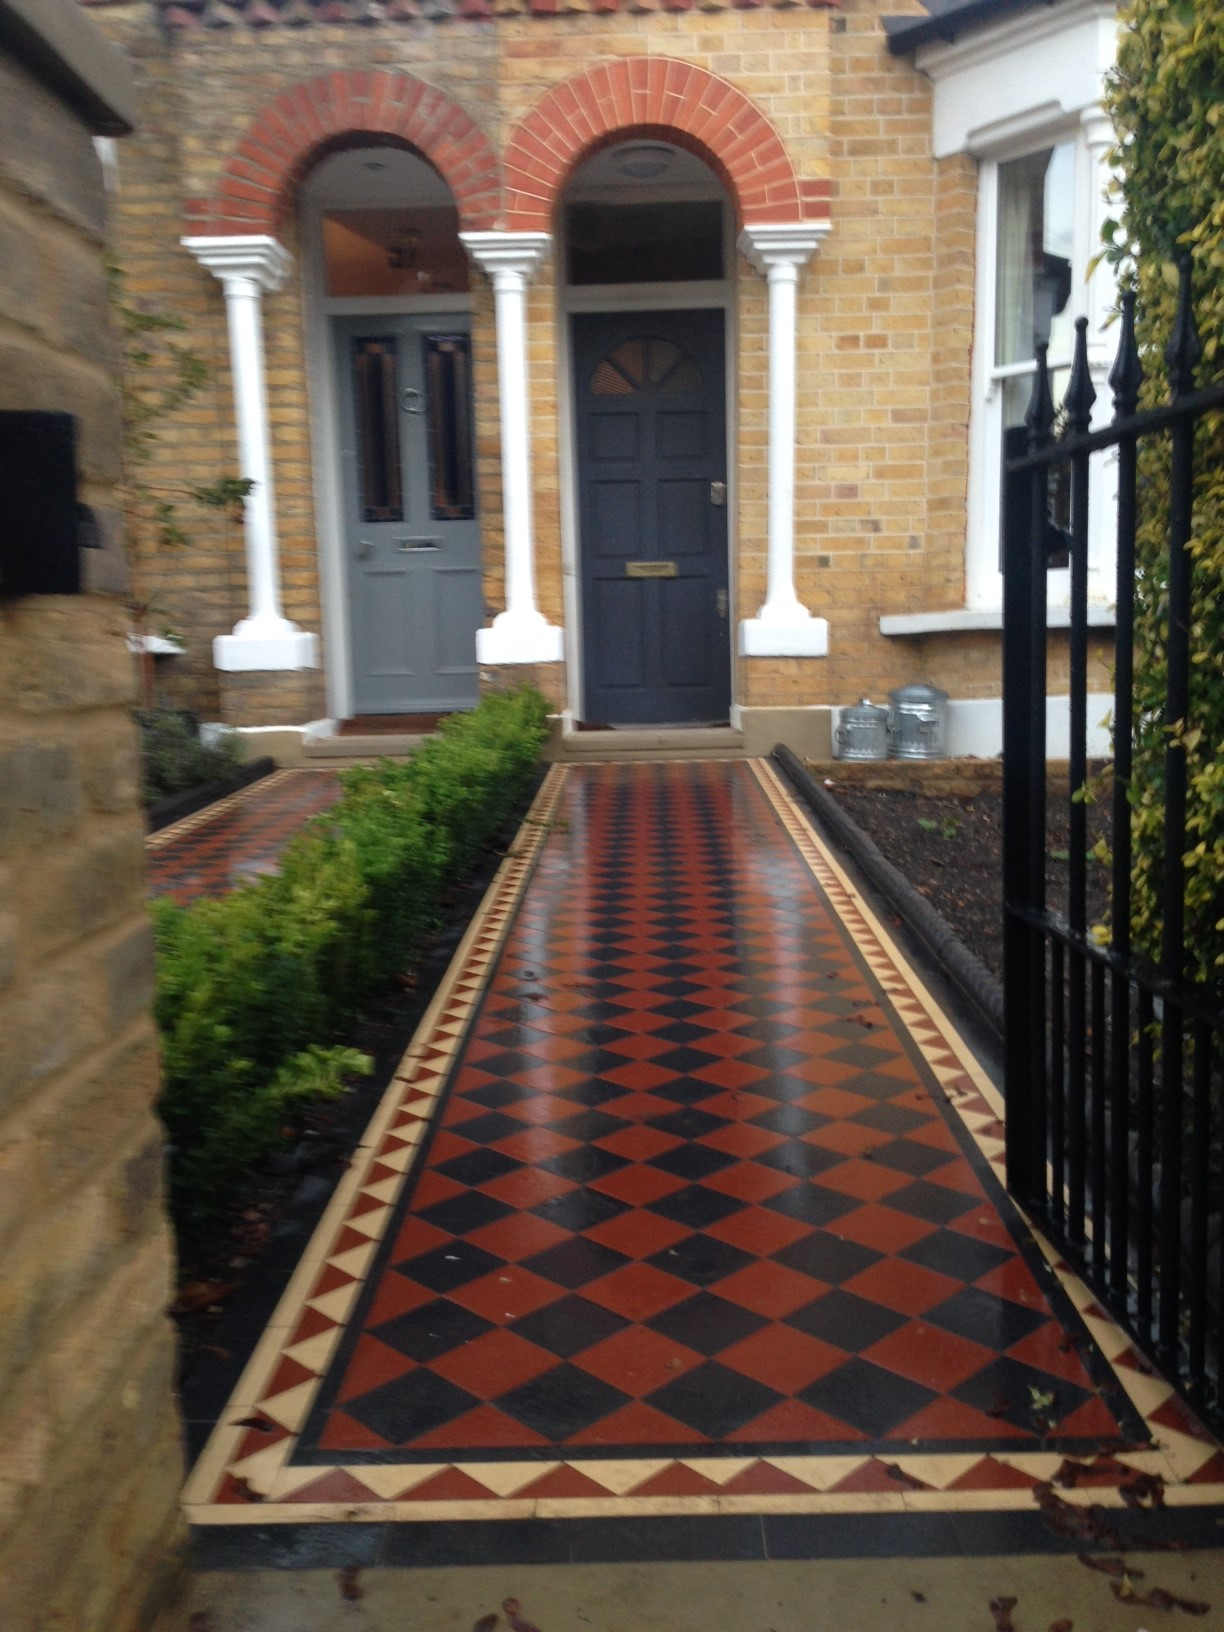 Brixton Herne Hill Victorian Mosaic Tile Path black and red tile with Yorkstone pier cap entrance stone and imperial yellow brick london stock wall (7)